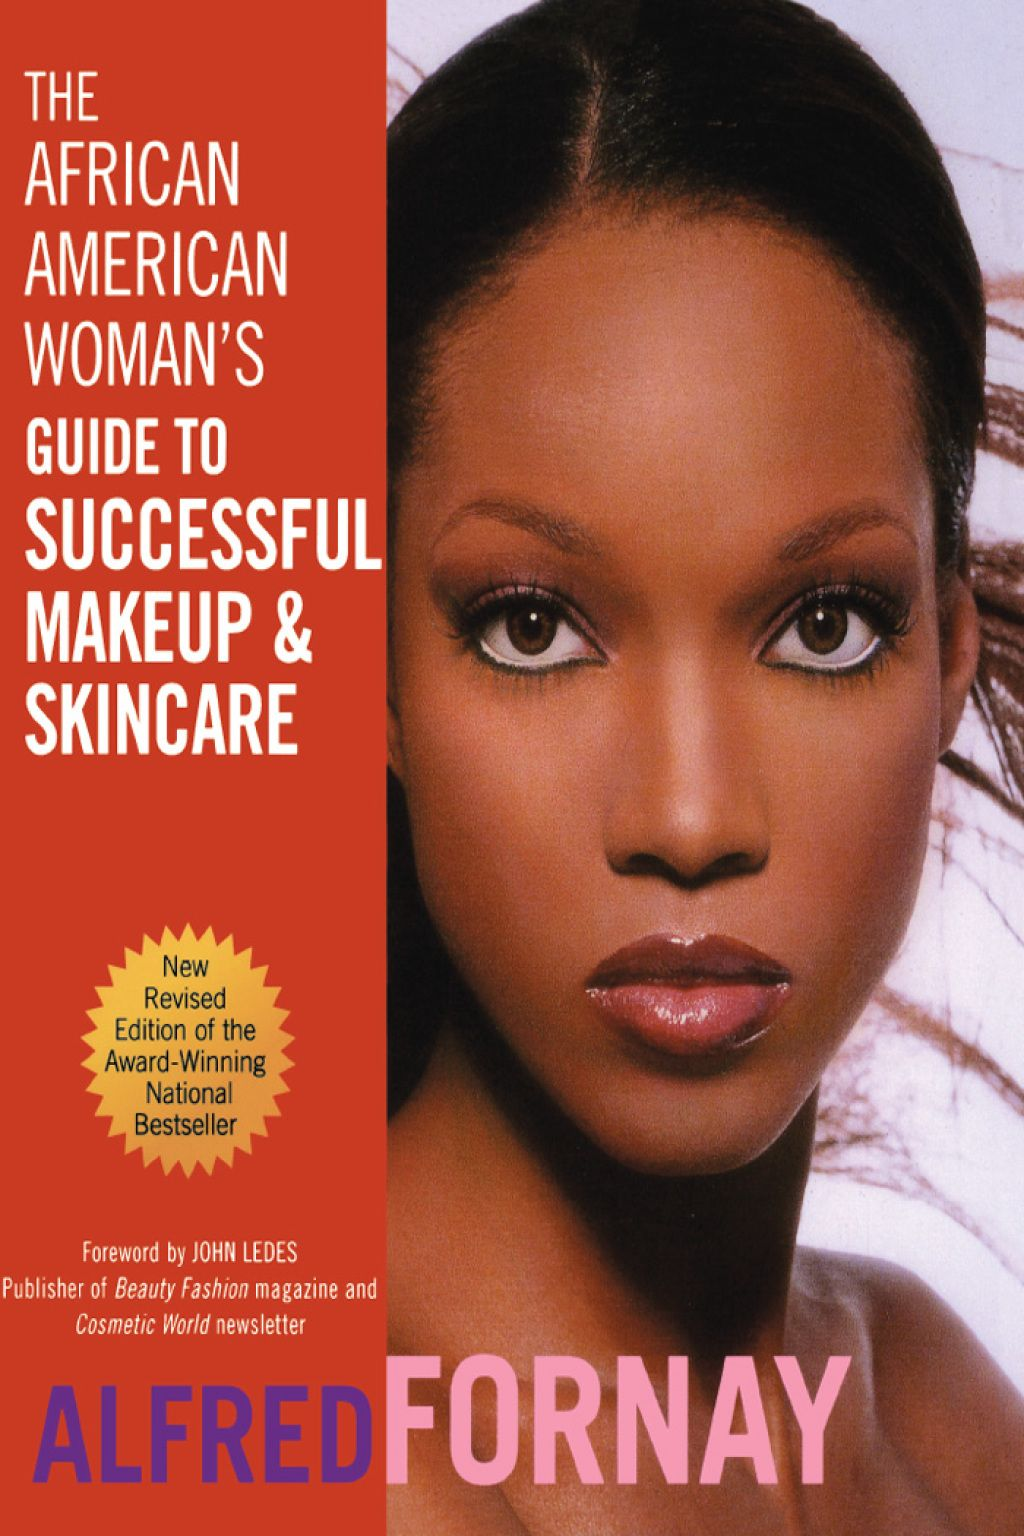 The African American Woman's Guide to Successful Makeup